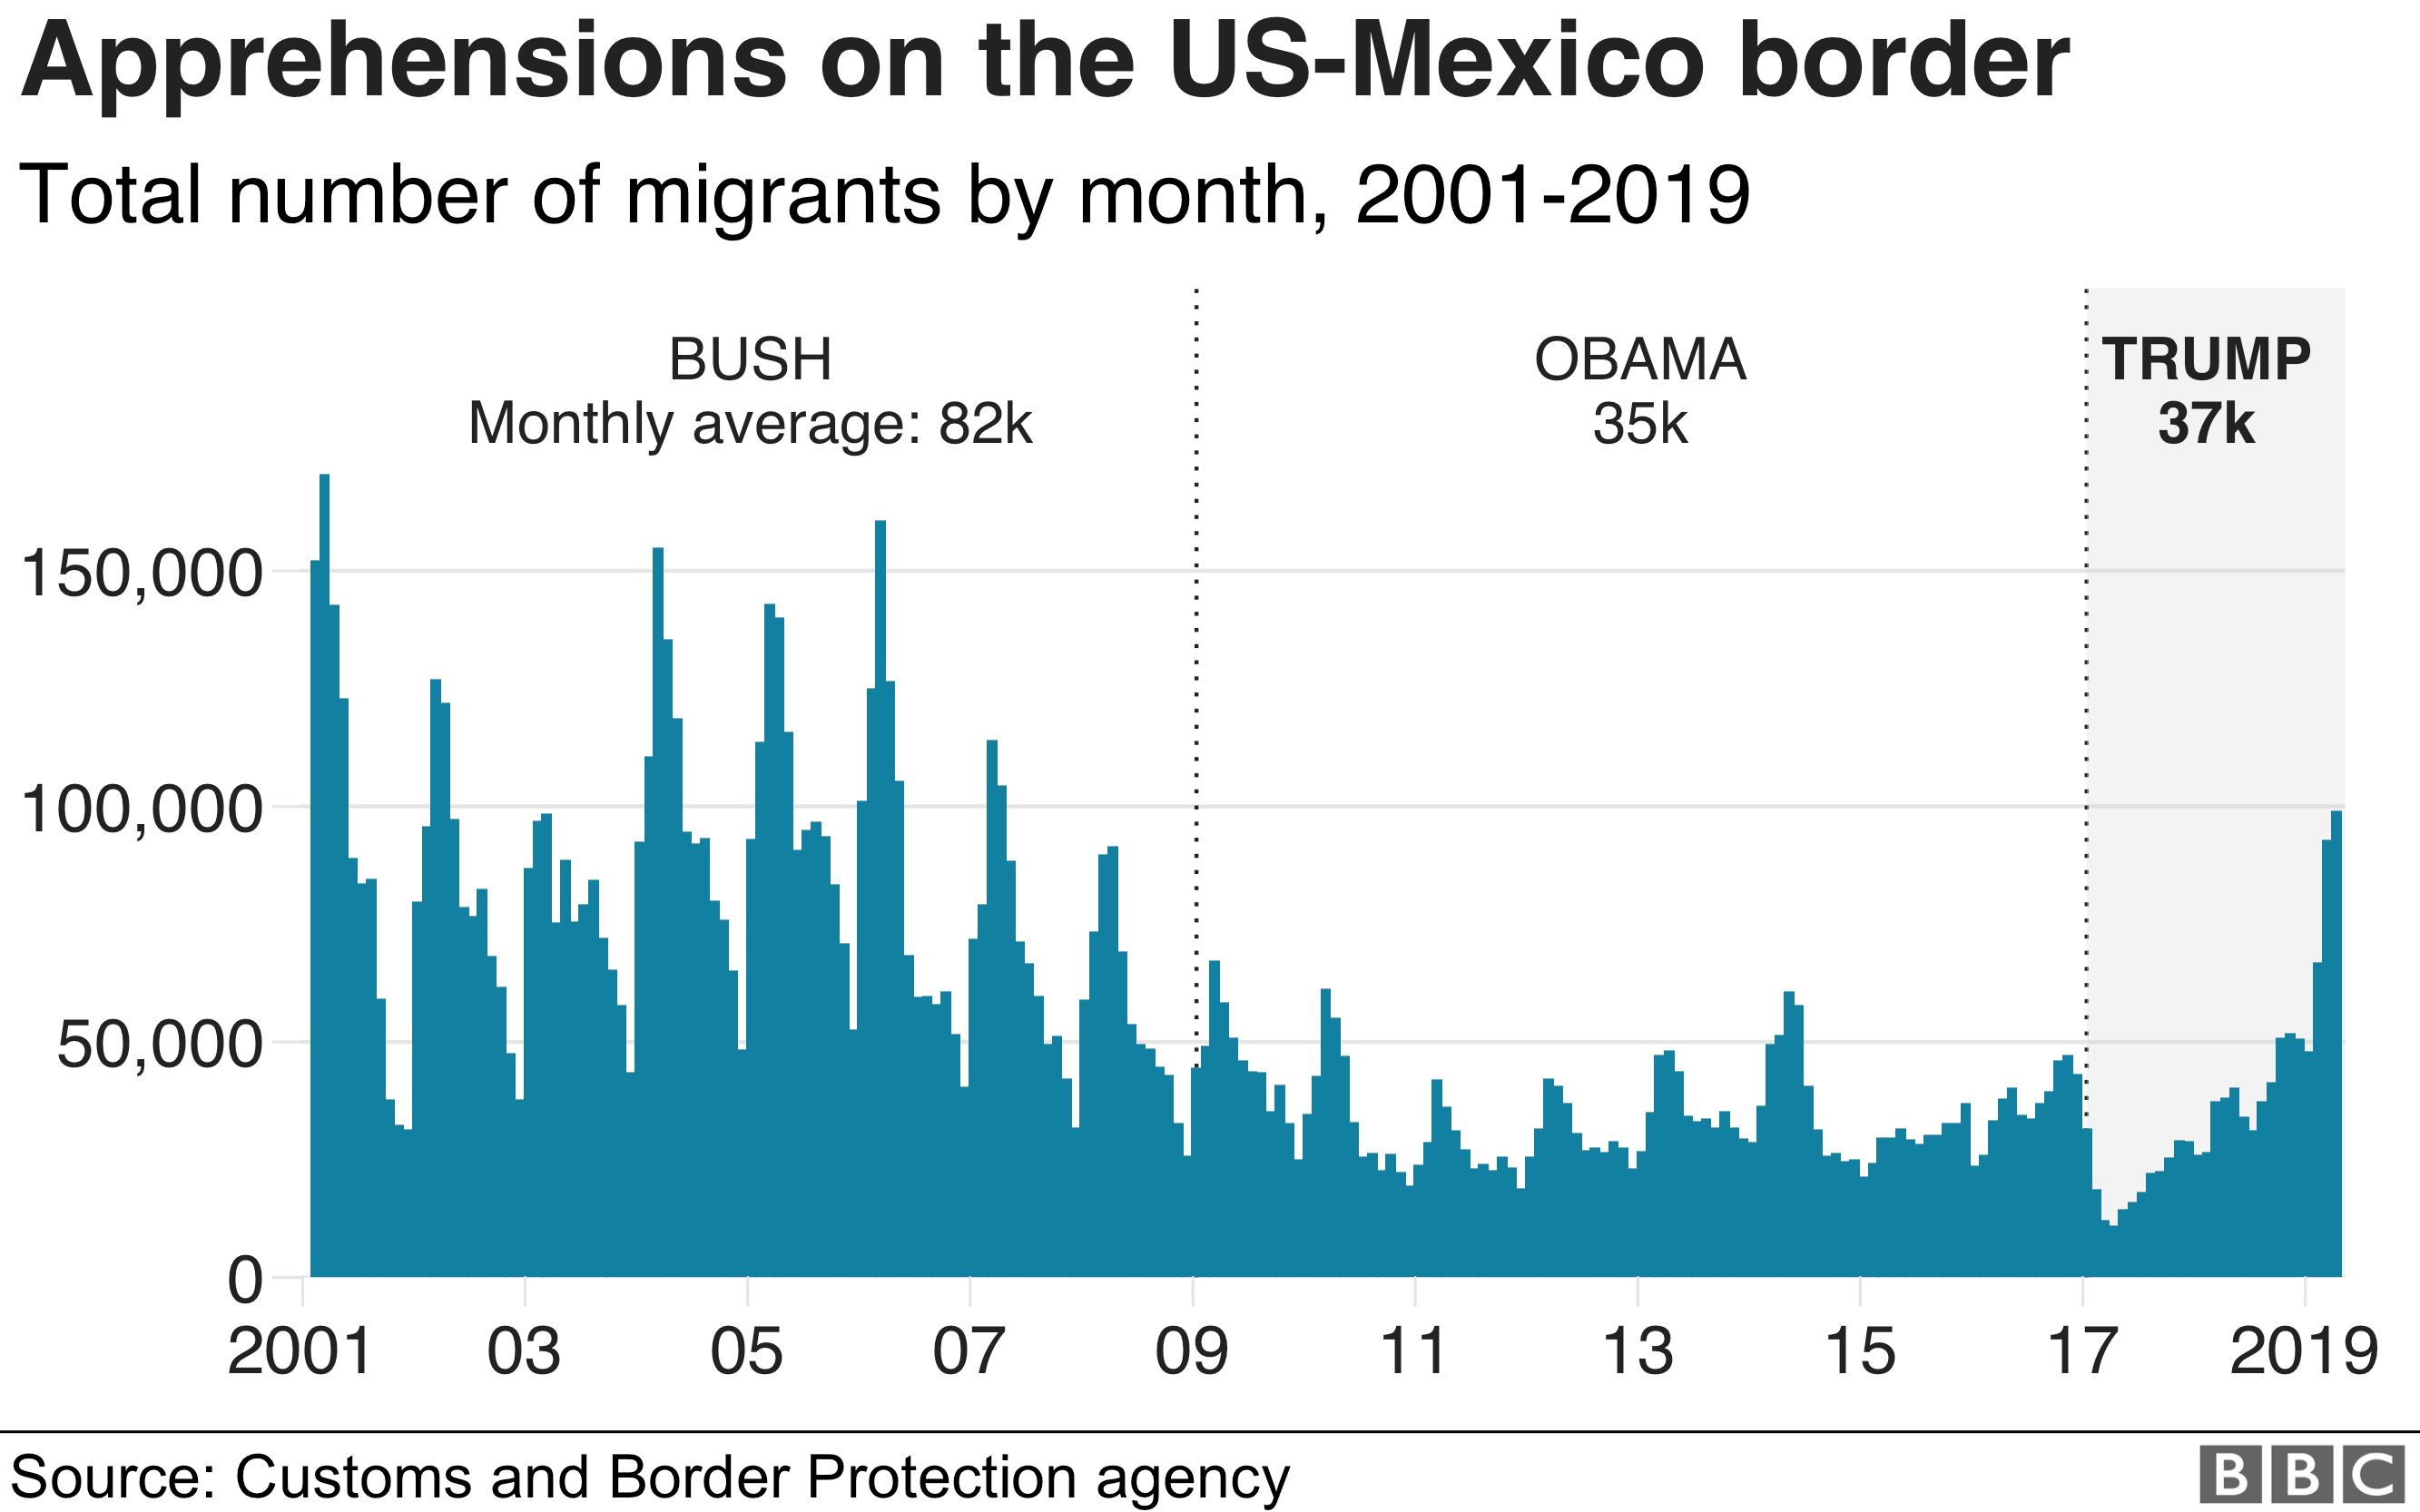 A graph showing apprehensions along the border